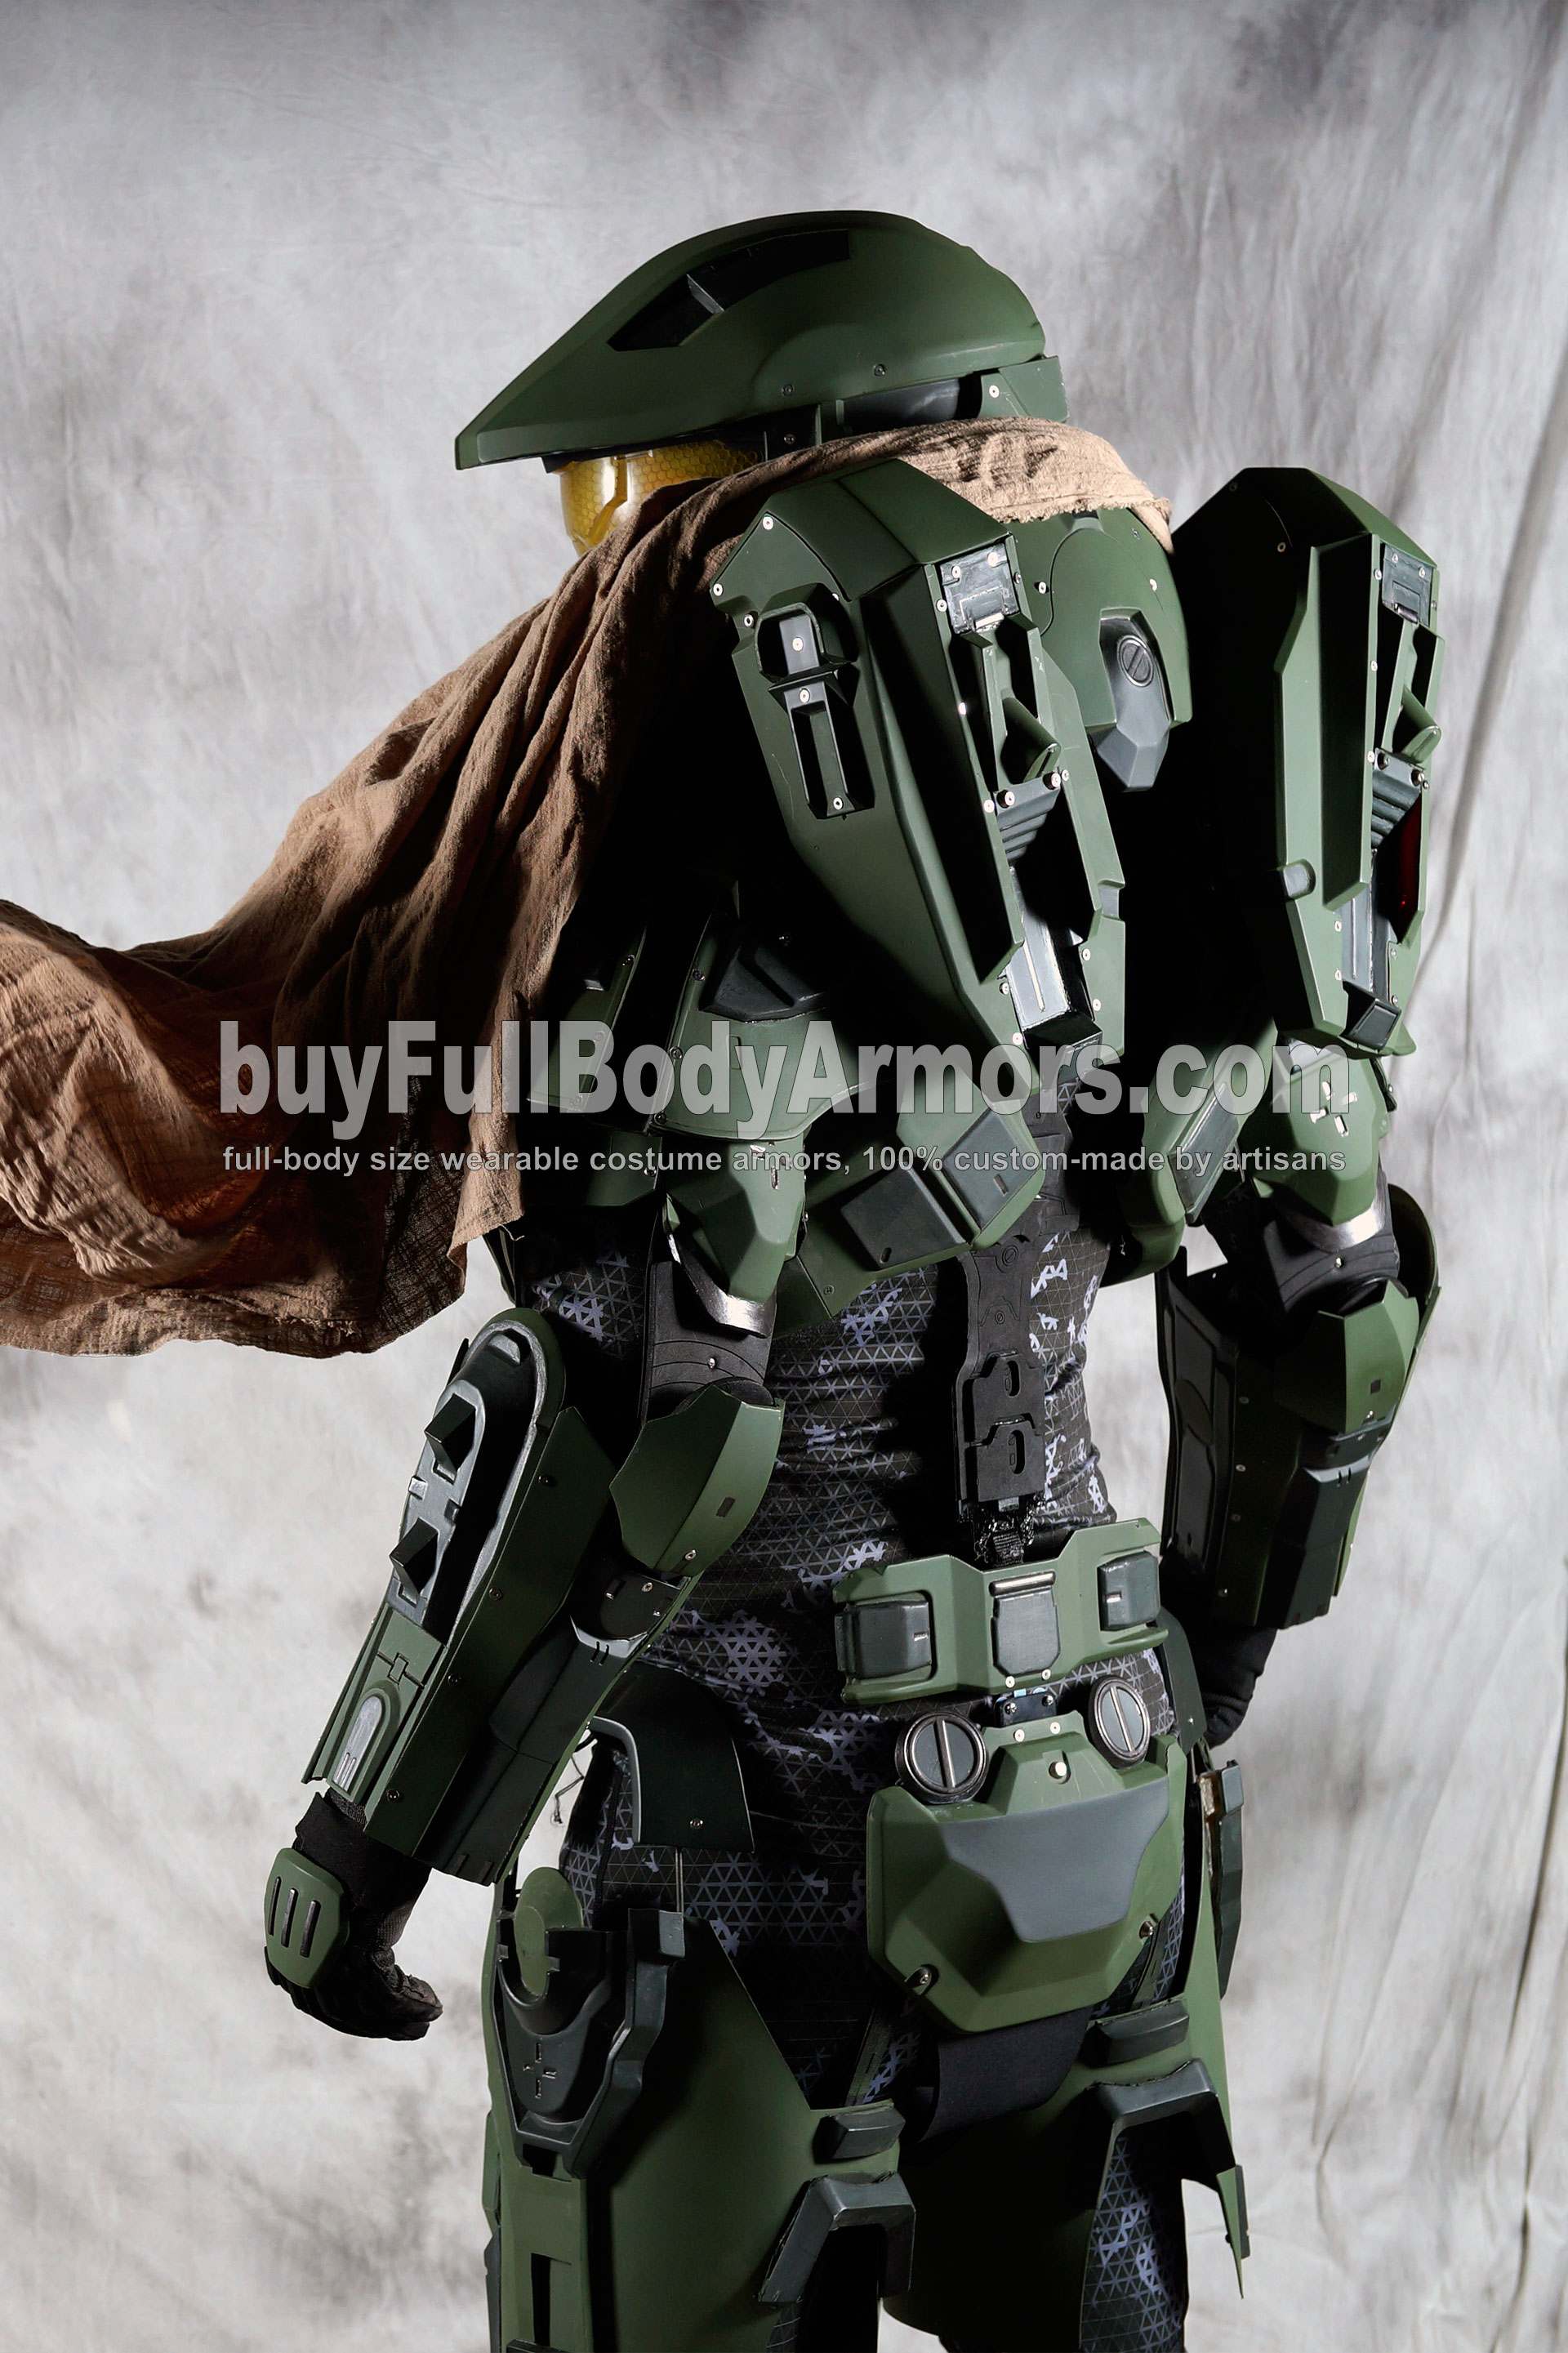 Halo 5 Master Chief Armor Suit Costume 5 & Buy Iron Man suit Halo Master Chief armor Batman costume Star ...